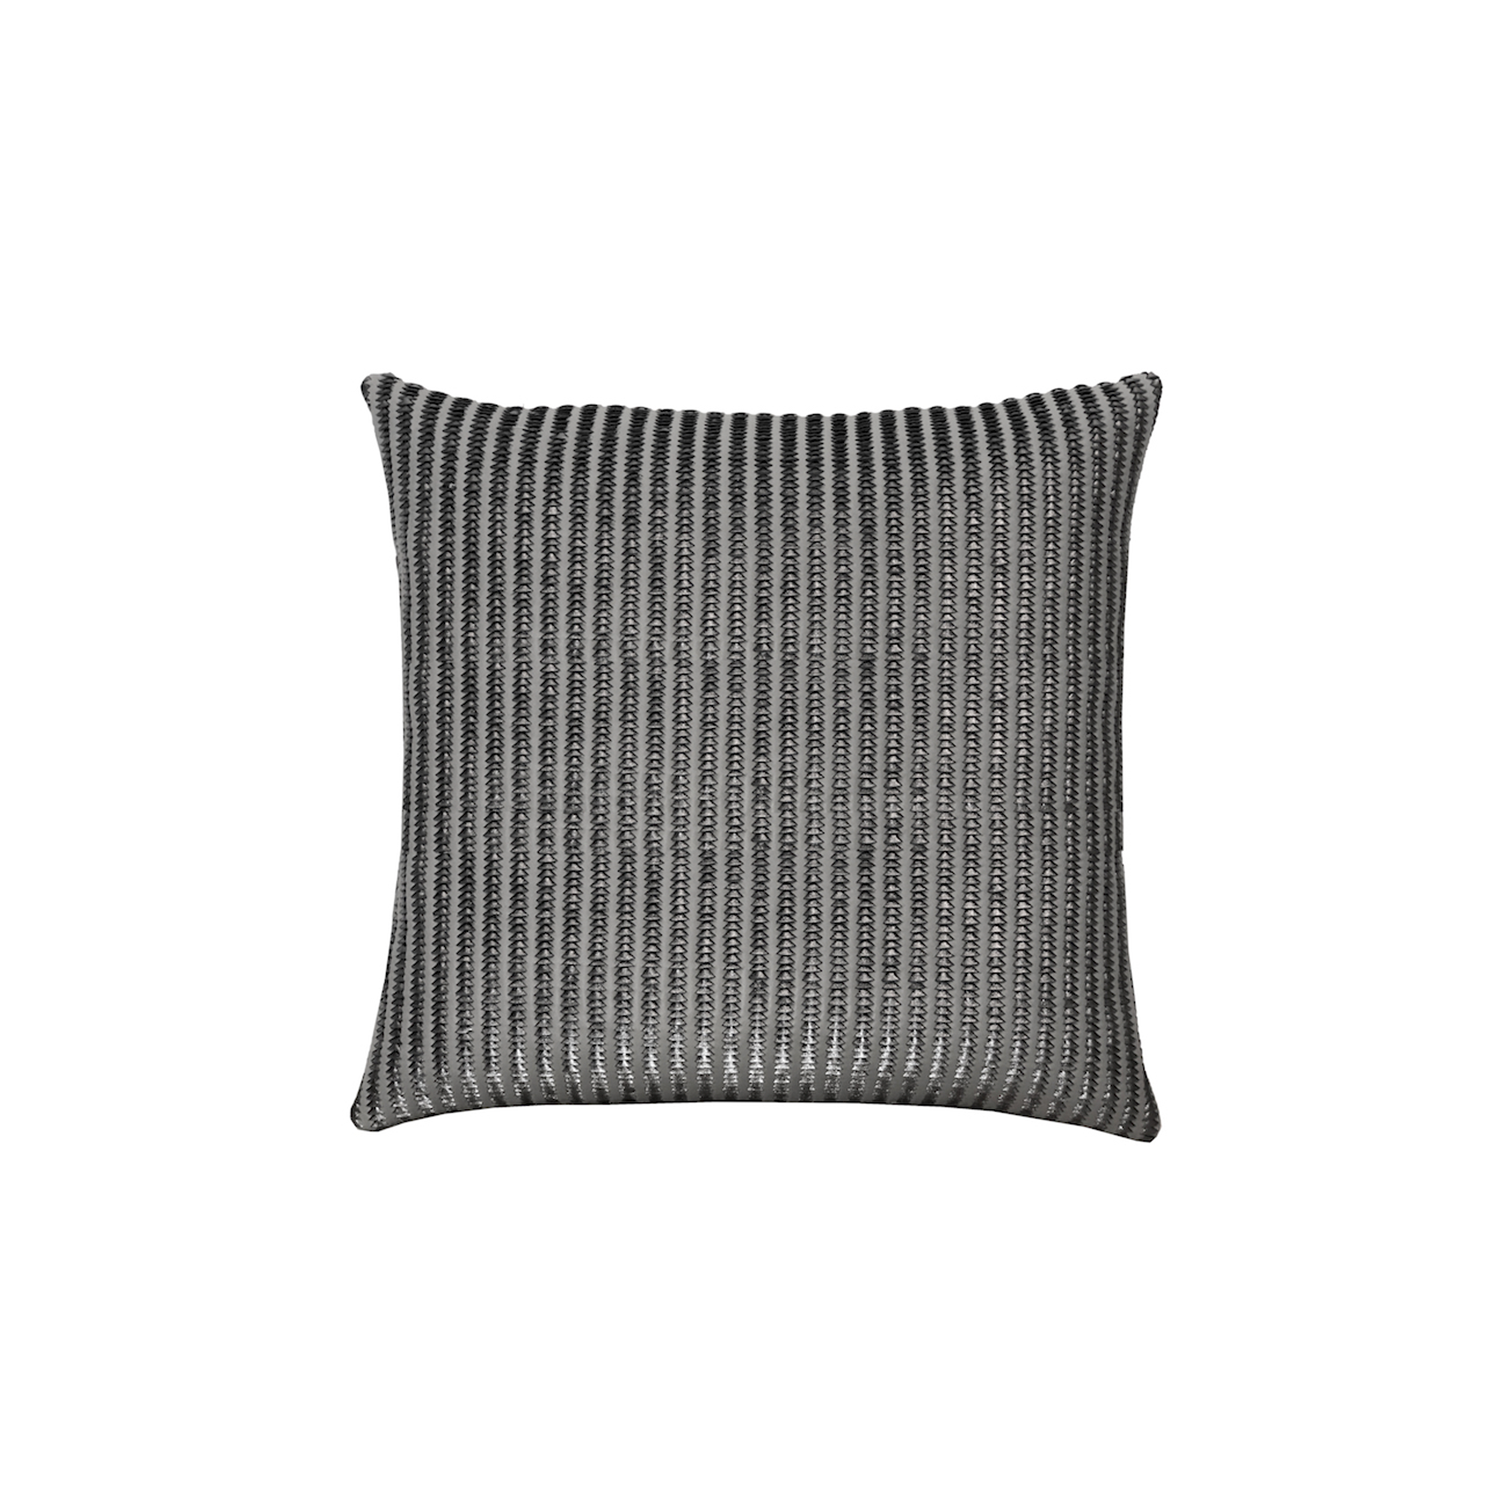 Espinha Woven Leather Cushion Square - The Espinha Woven Leather Cushion is designed to complement an ambient with a natural and sophisticated feeling. This cushion style is available in pleated leather or pleated suede leather. Elisa Atheniense woven handmade leather cushions are specially manufactured in Brazil using an exclusive treated leather that brings the soft feel touch to every single piece.   The front panel is handwoven in leather and the back panel is 100% Pes, made in Brazil.  The inner cushion is available in Hollow Fibre and European Duck Feathers, made in the UK.  Espinha Woven Leather Cushion is available in multiple colours of leather. Please enquire for colour combination, see colour chart for reference.   | Matter of Stuff